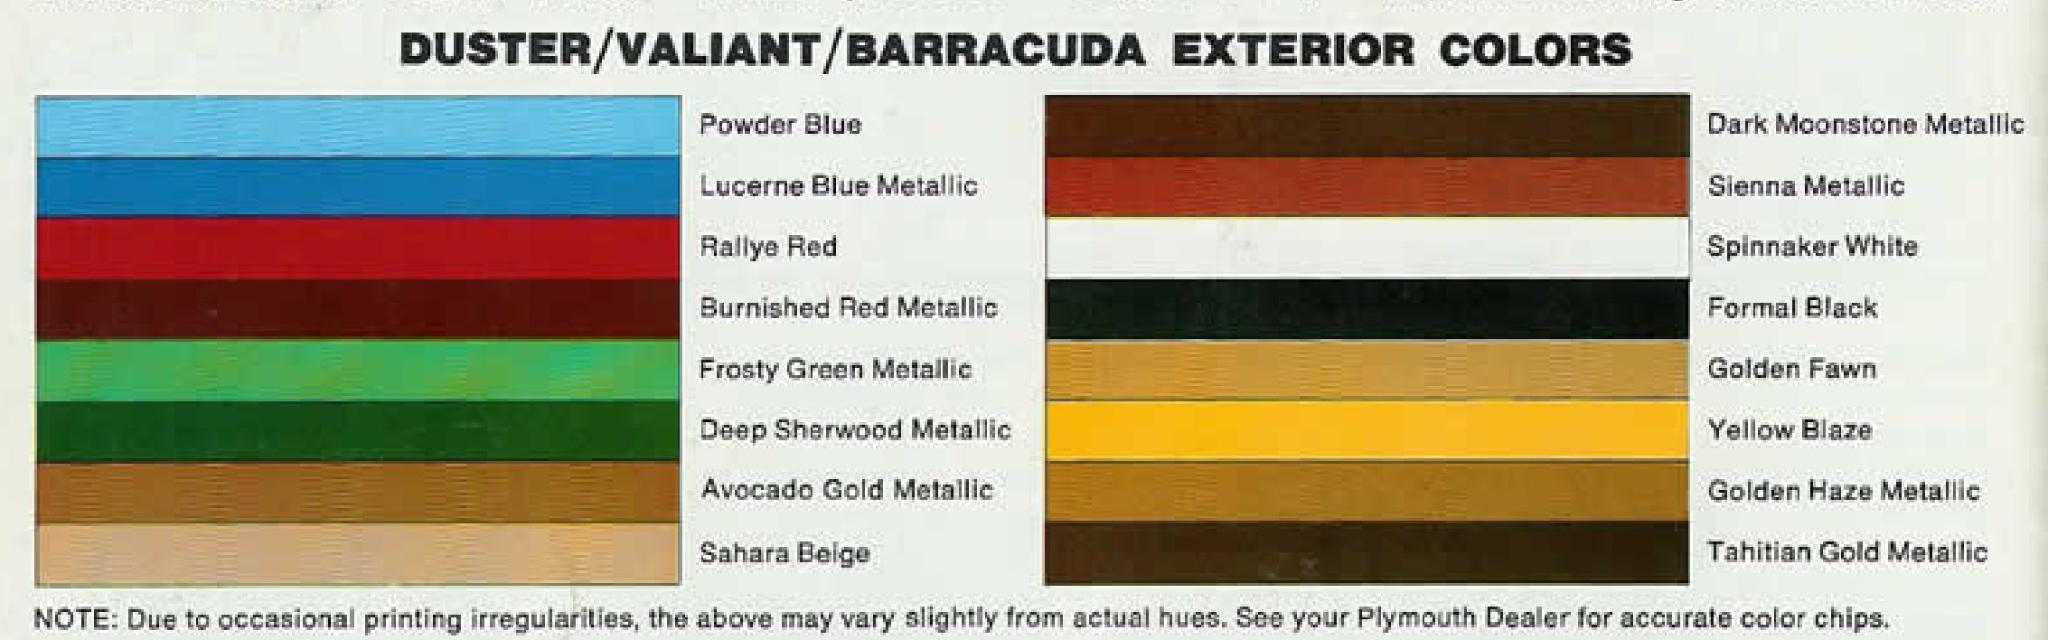 1974 Exterior Colors for Plymouth vehicles